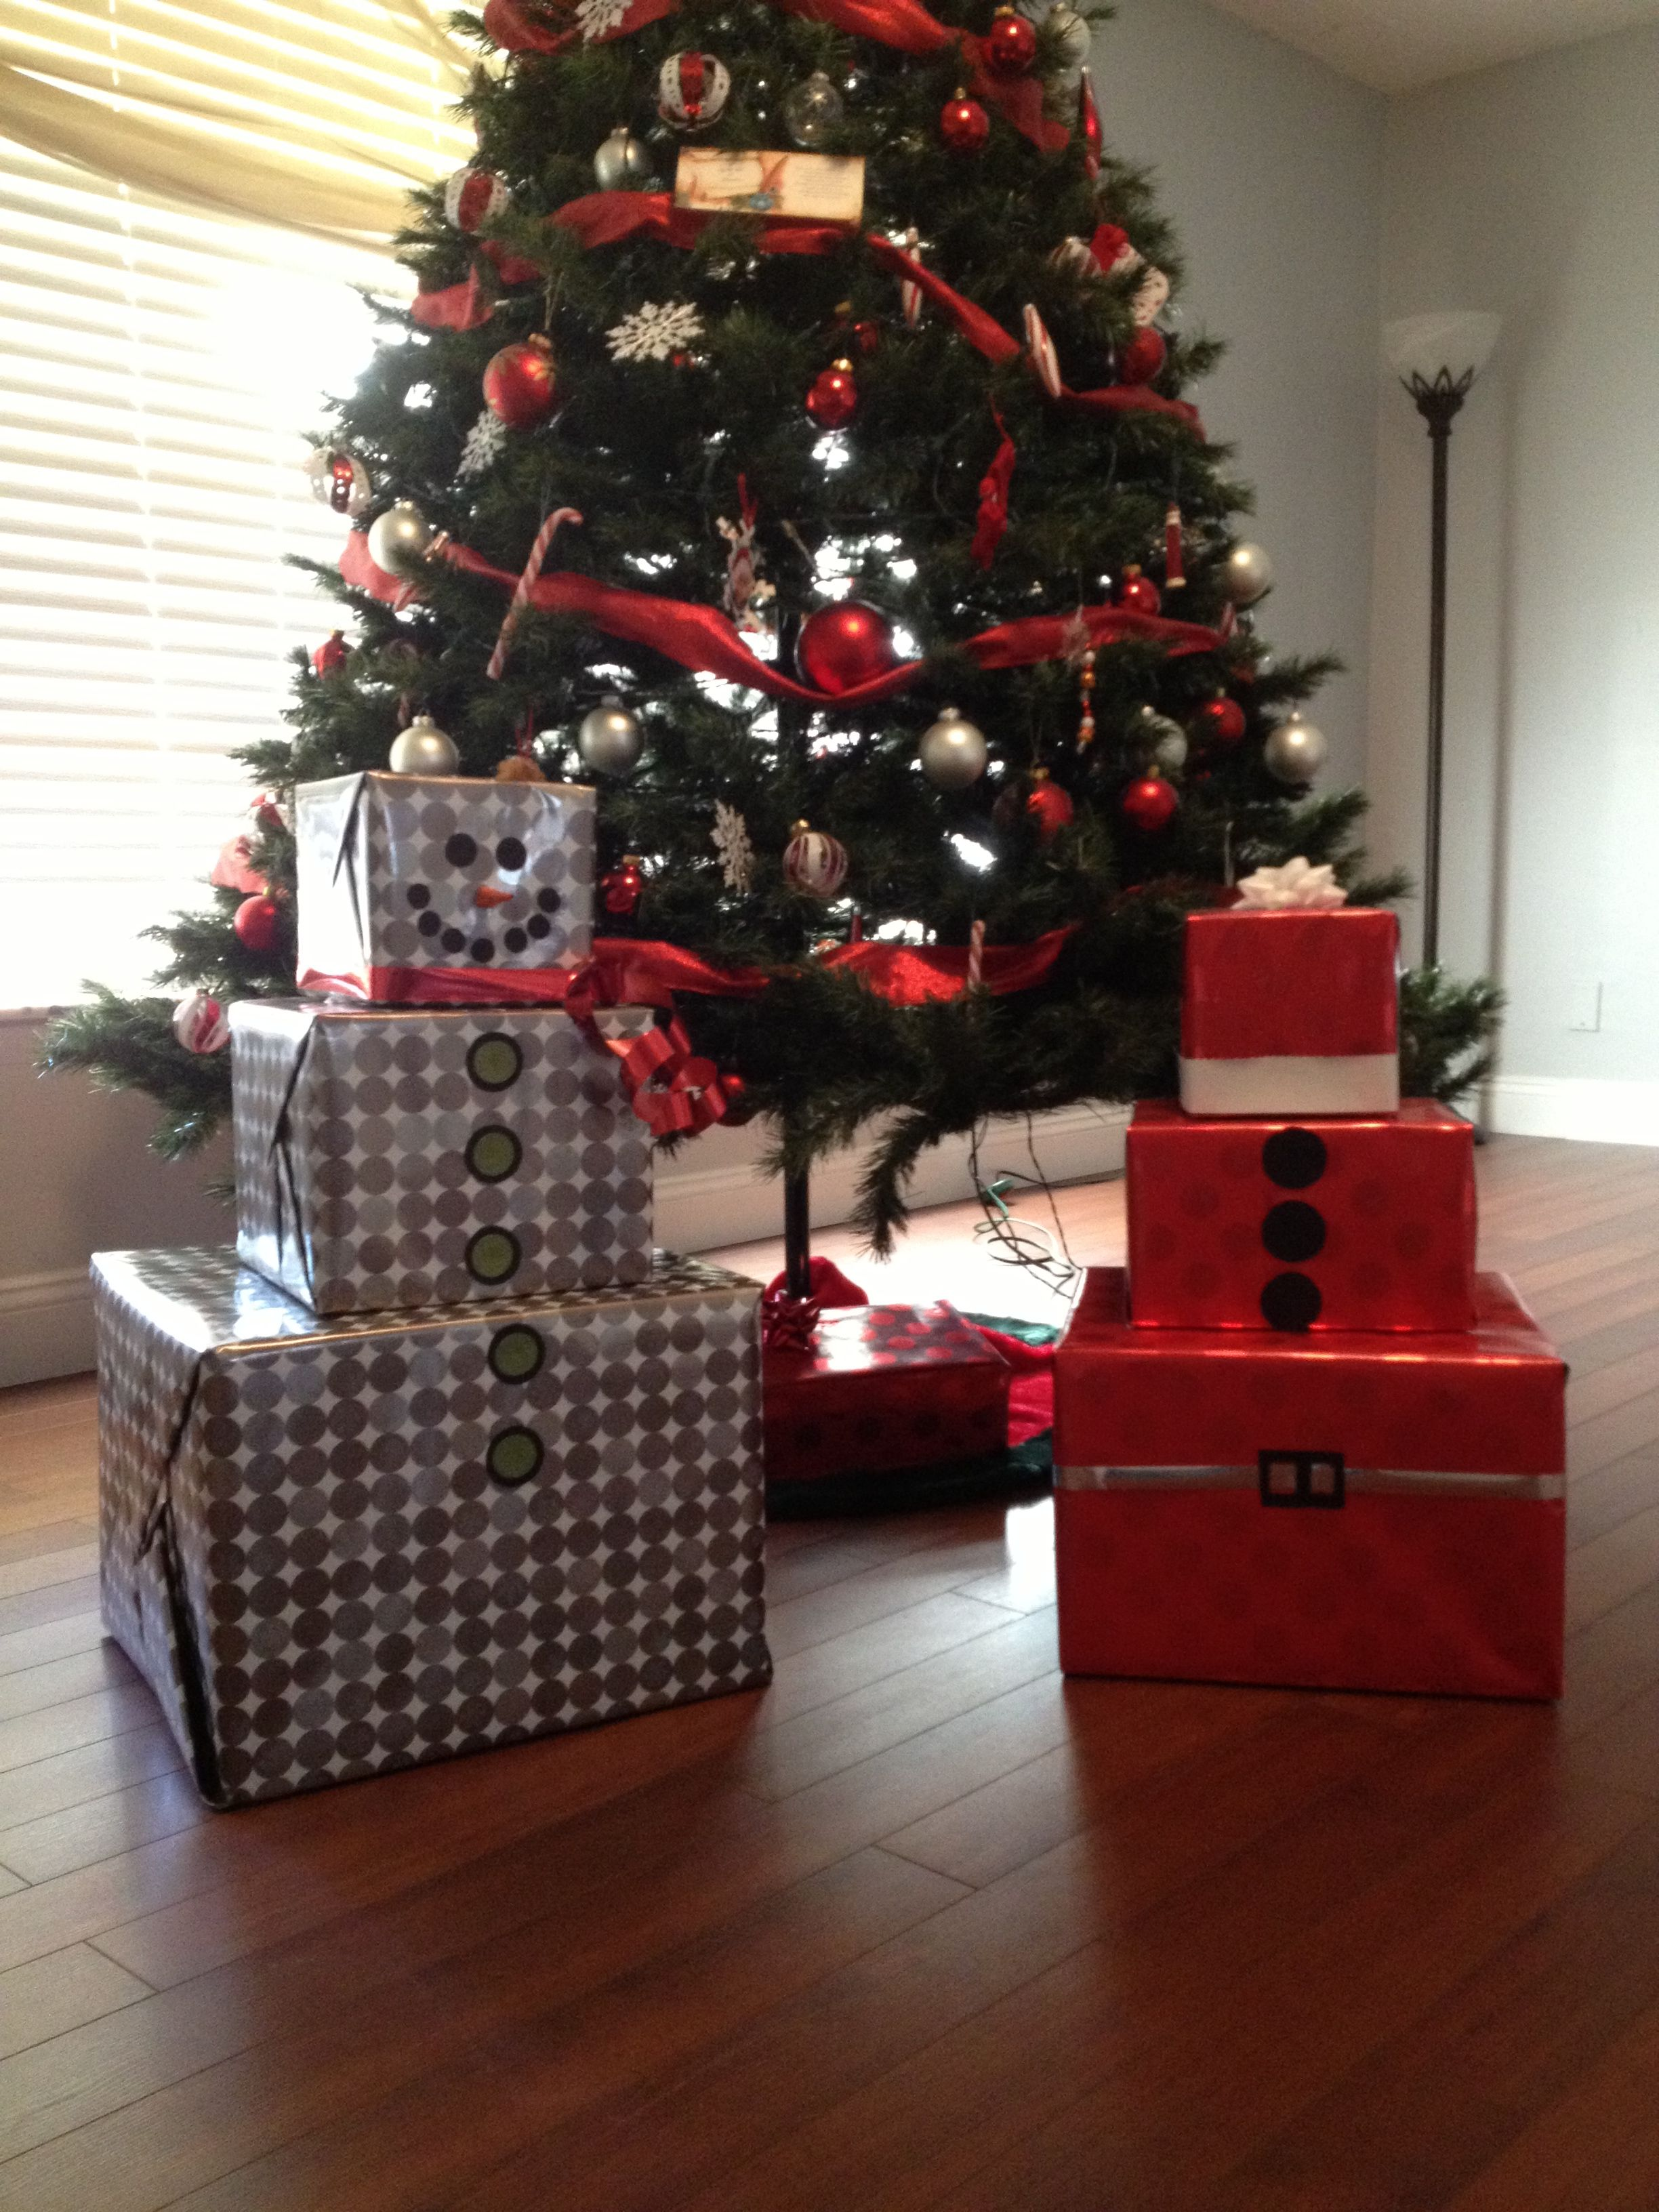 The boys gifts turned into Santa & snowman gift wrapped